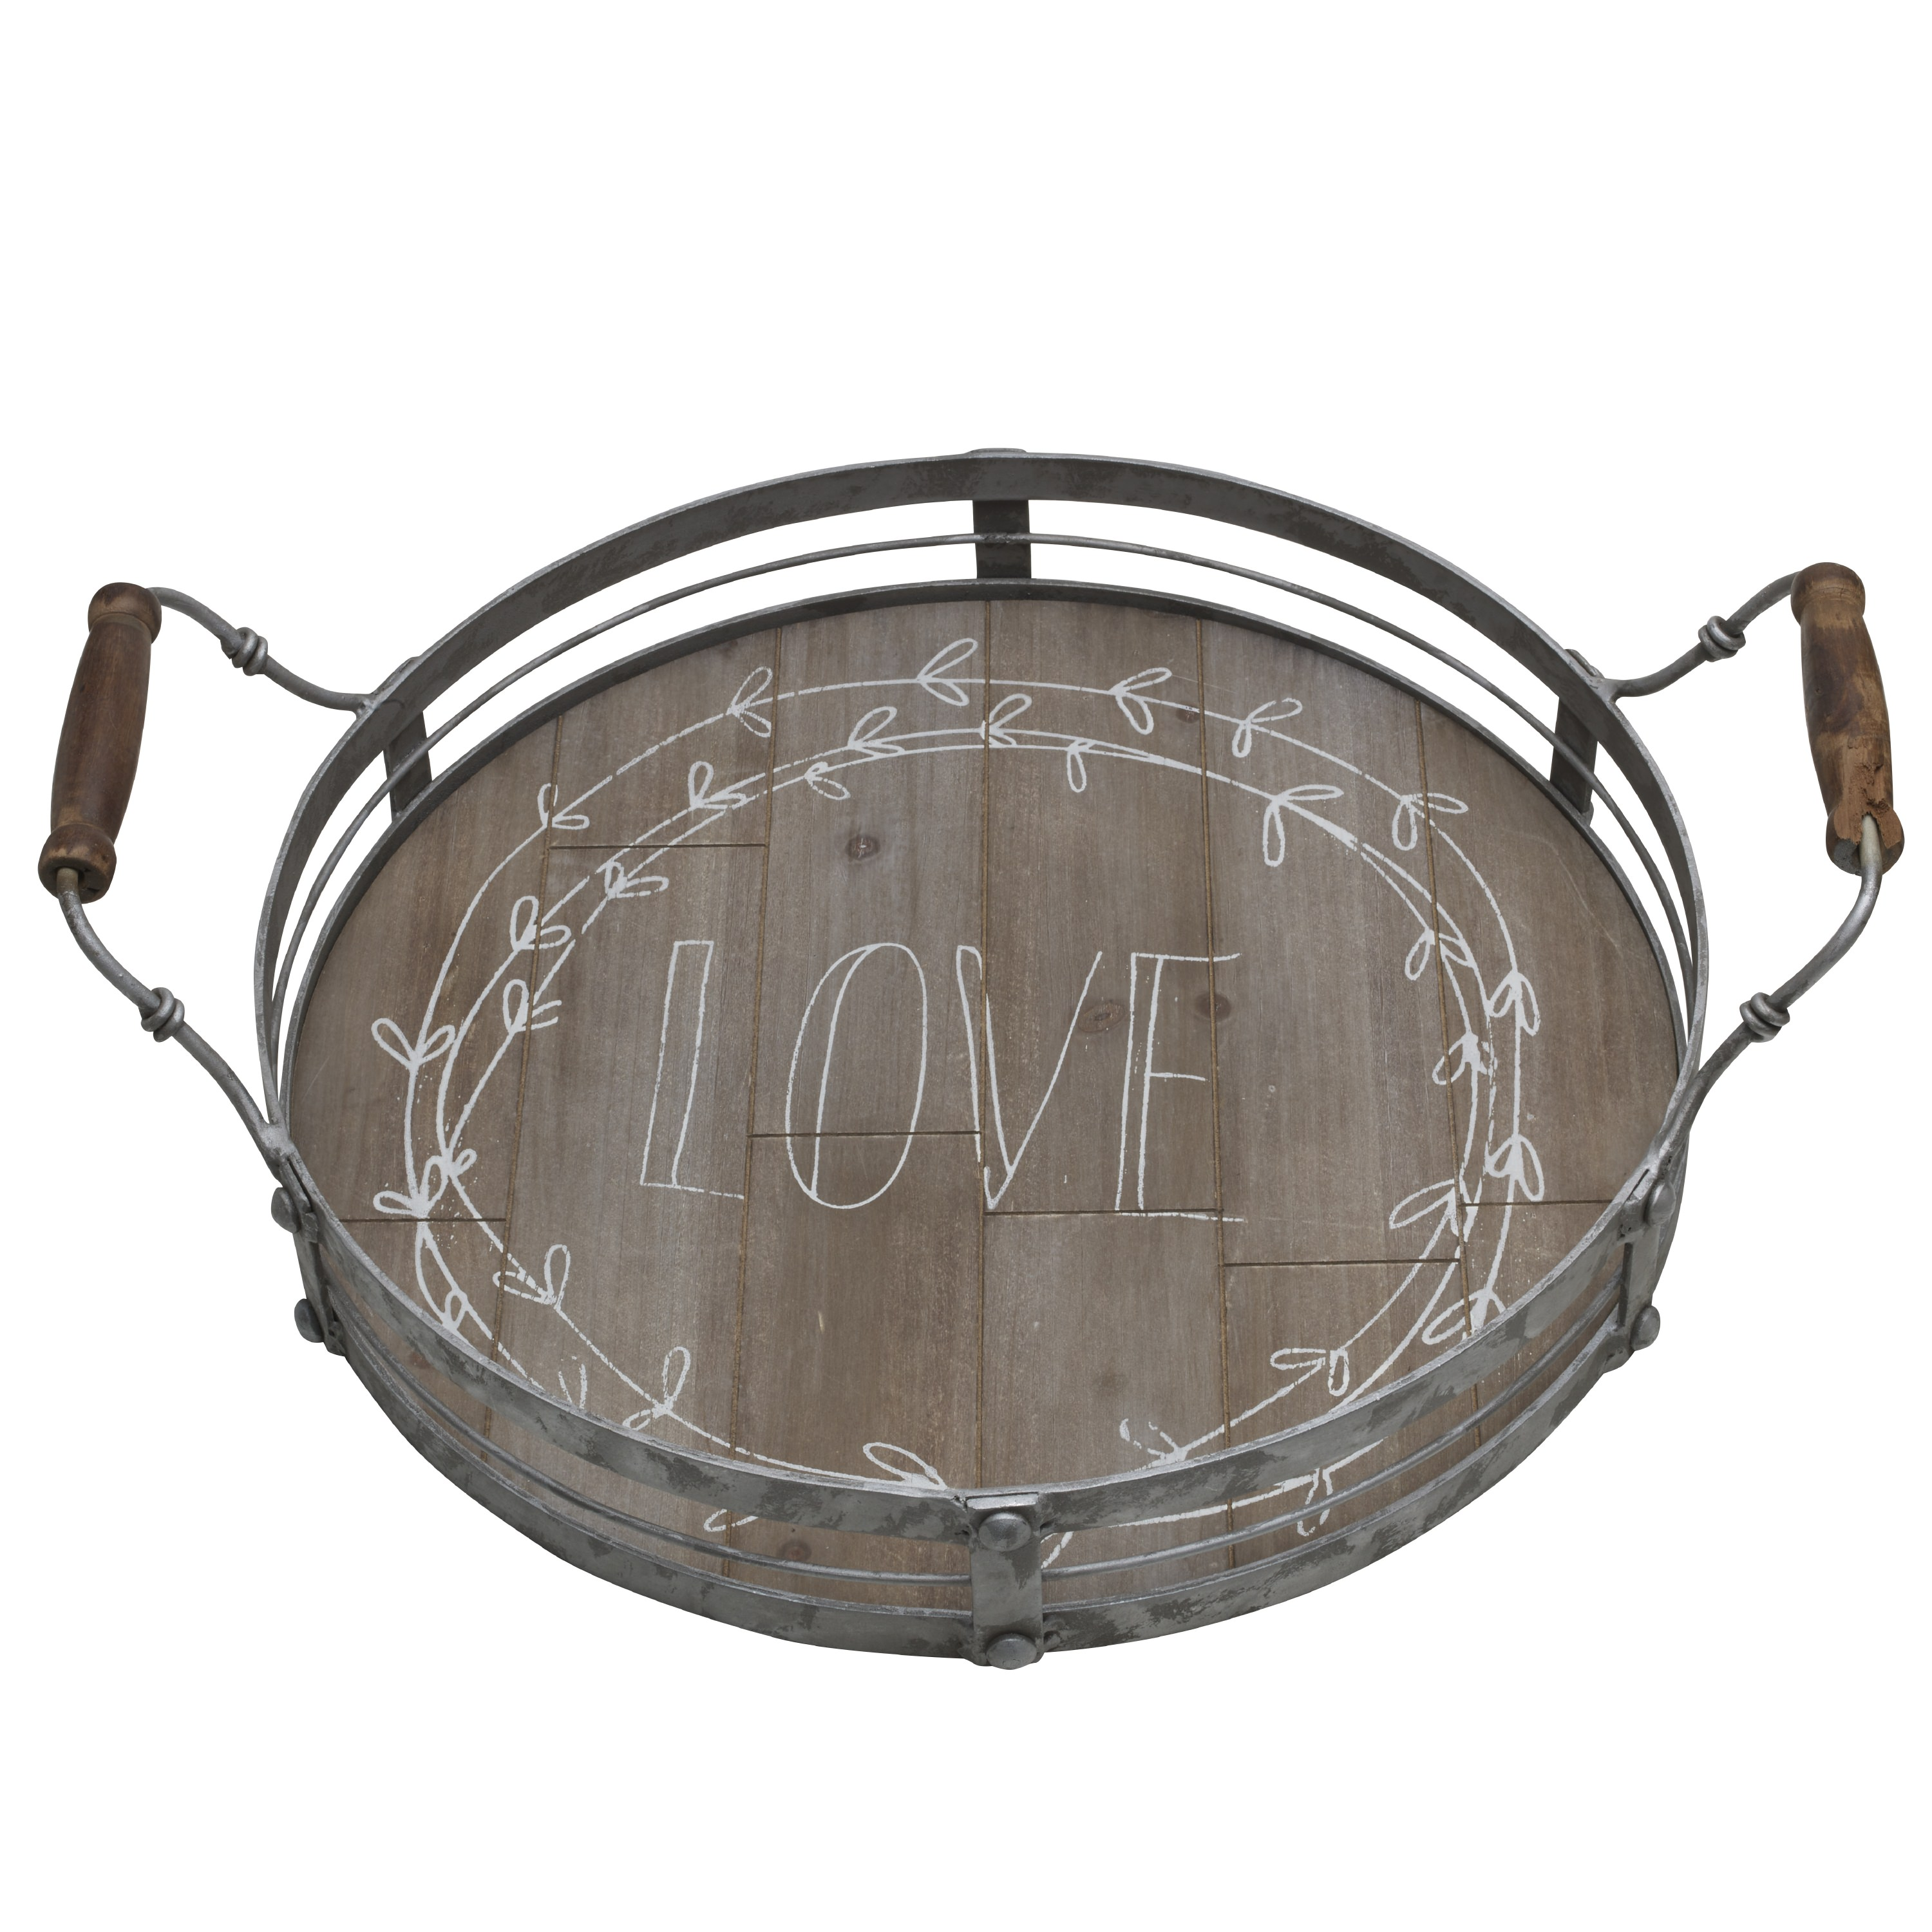 Elements 16.75 Inch Round Wood Galvanized Love Tray